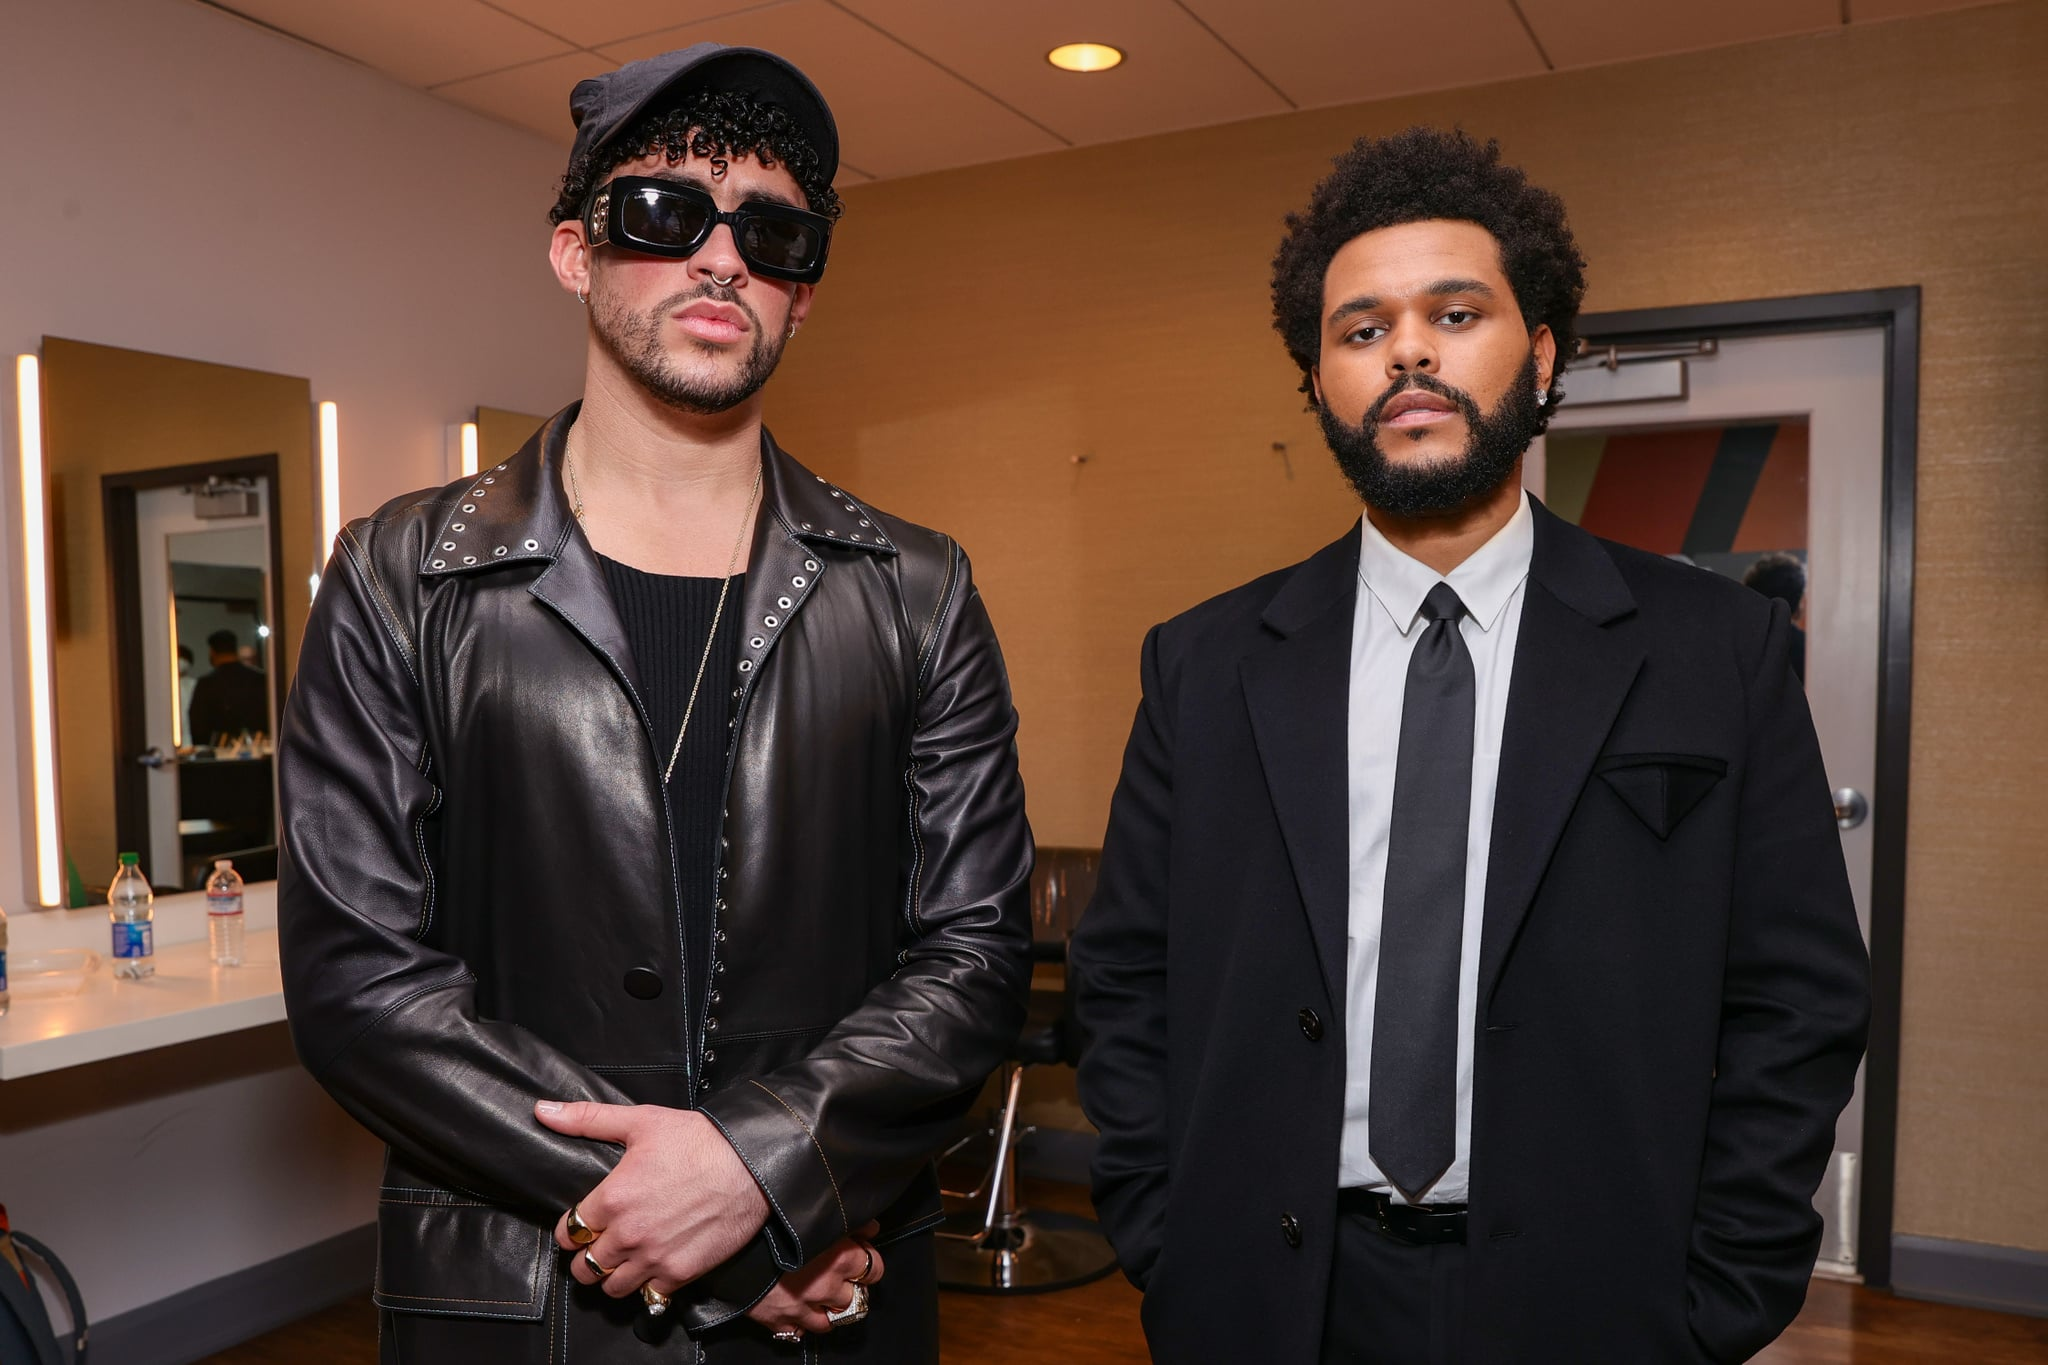 LOS ANGELES, CALIFORNIA - MAY 23: Bad Bunny and The Weeknd pose backstage for the 2021 Billboard Music Awards, broadcast on May 23, 2021 at Microsoft Theatre in Los Angeles, California. (Photo by Rich Fury/Getty Images for dcp)